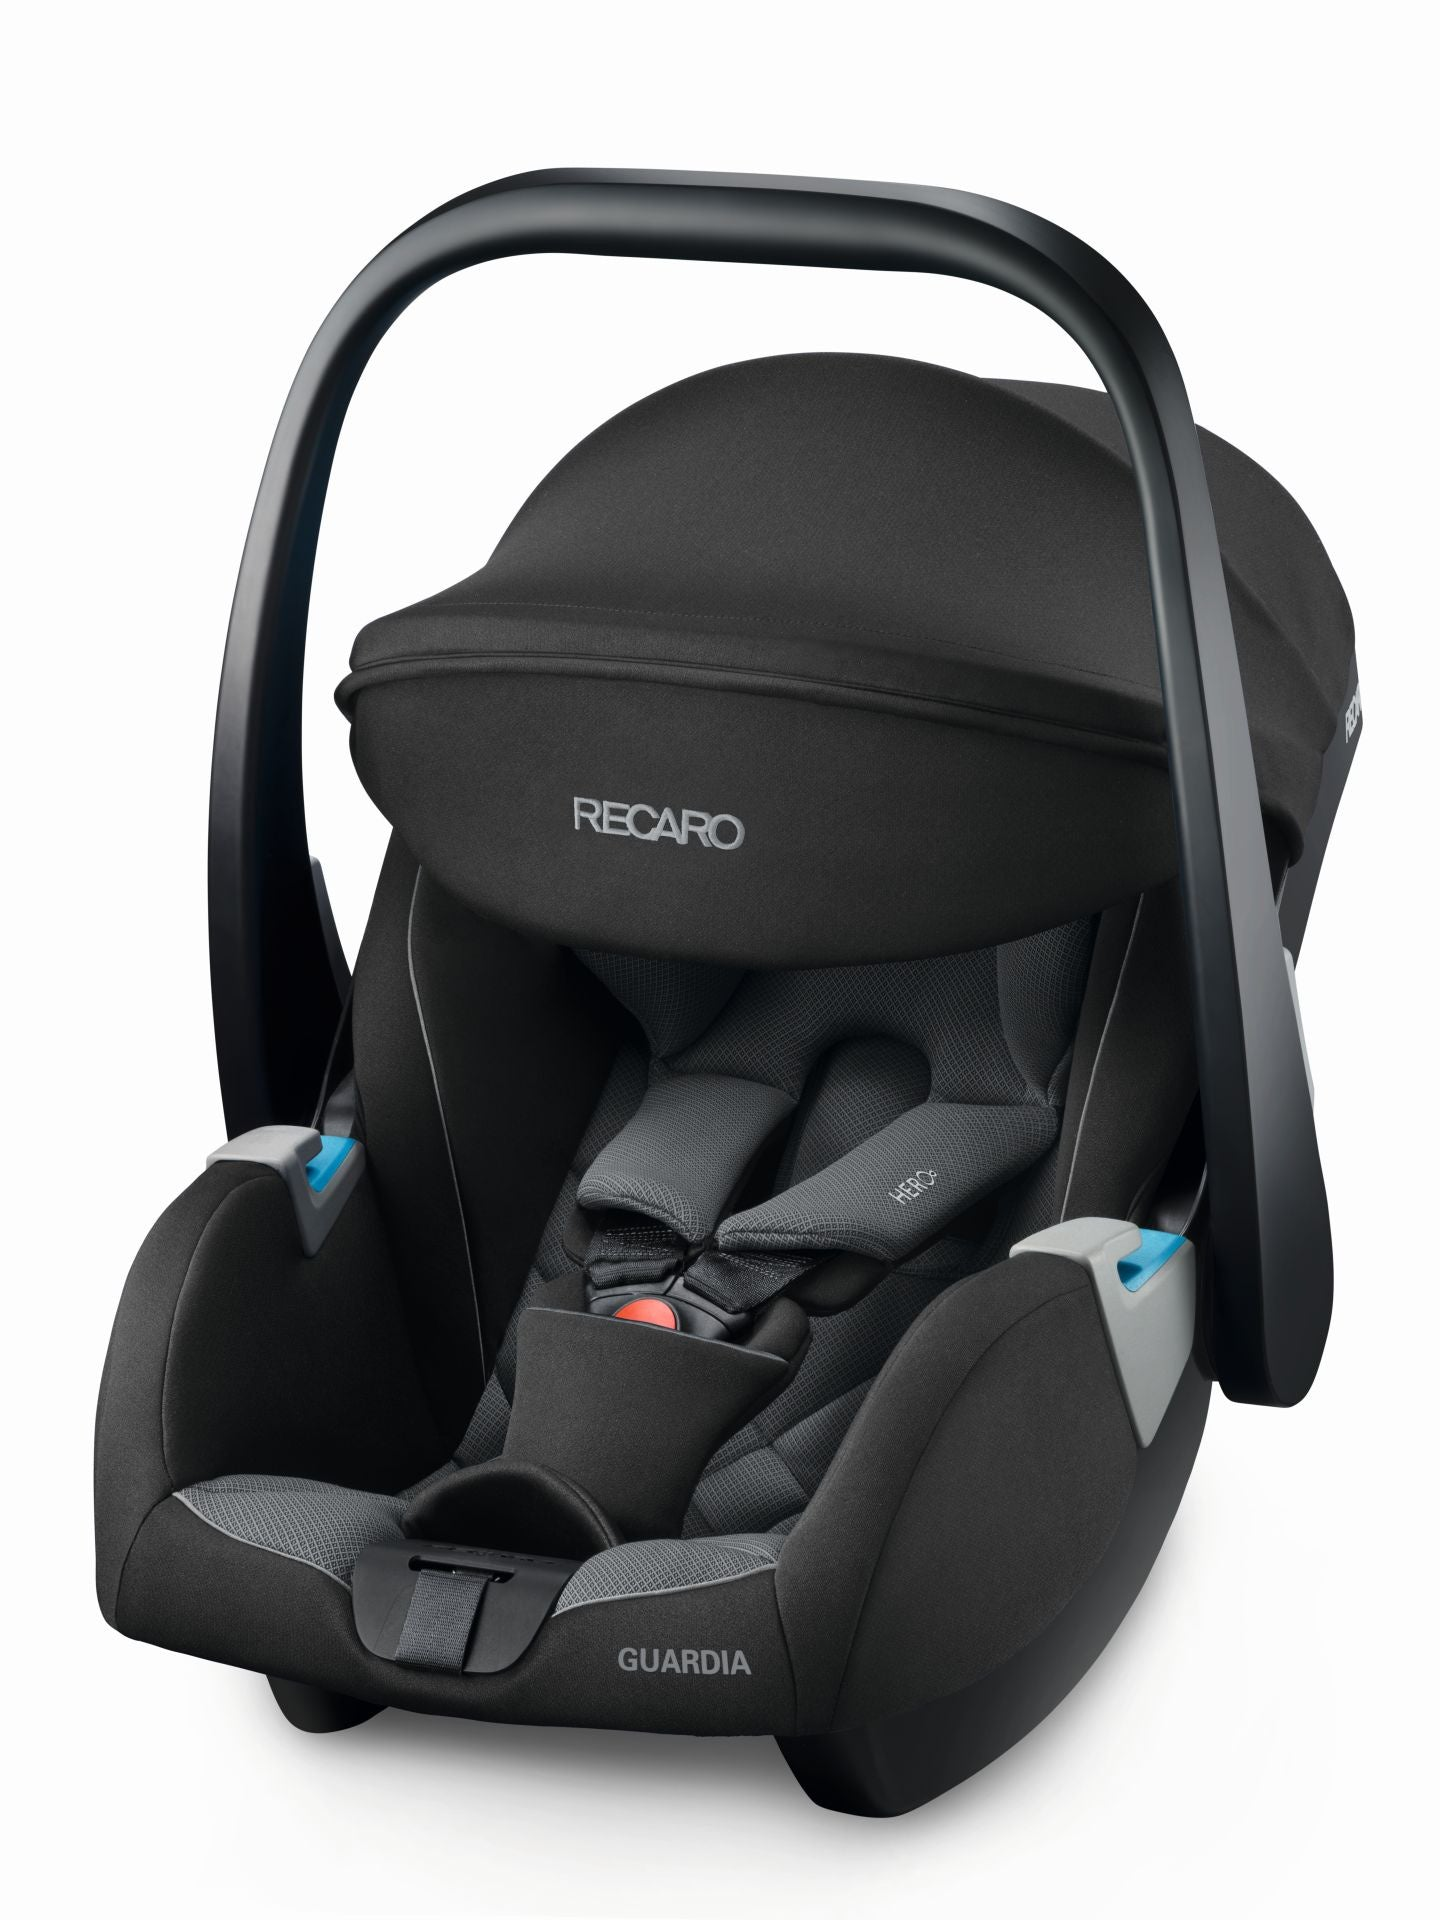 Recaro Guardia Infant Carrier